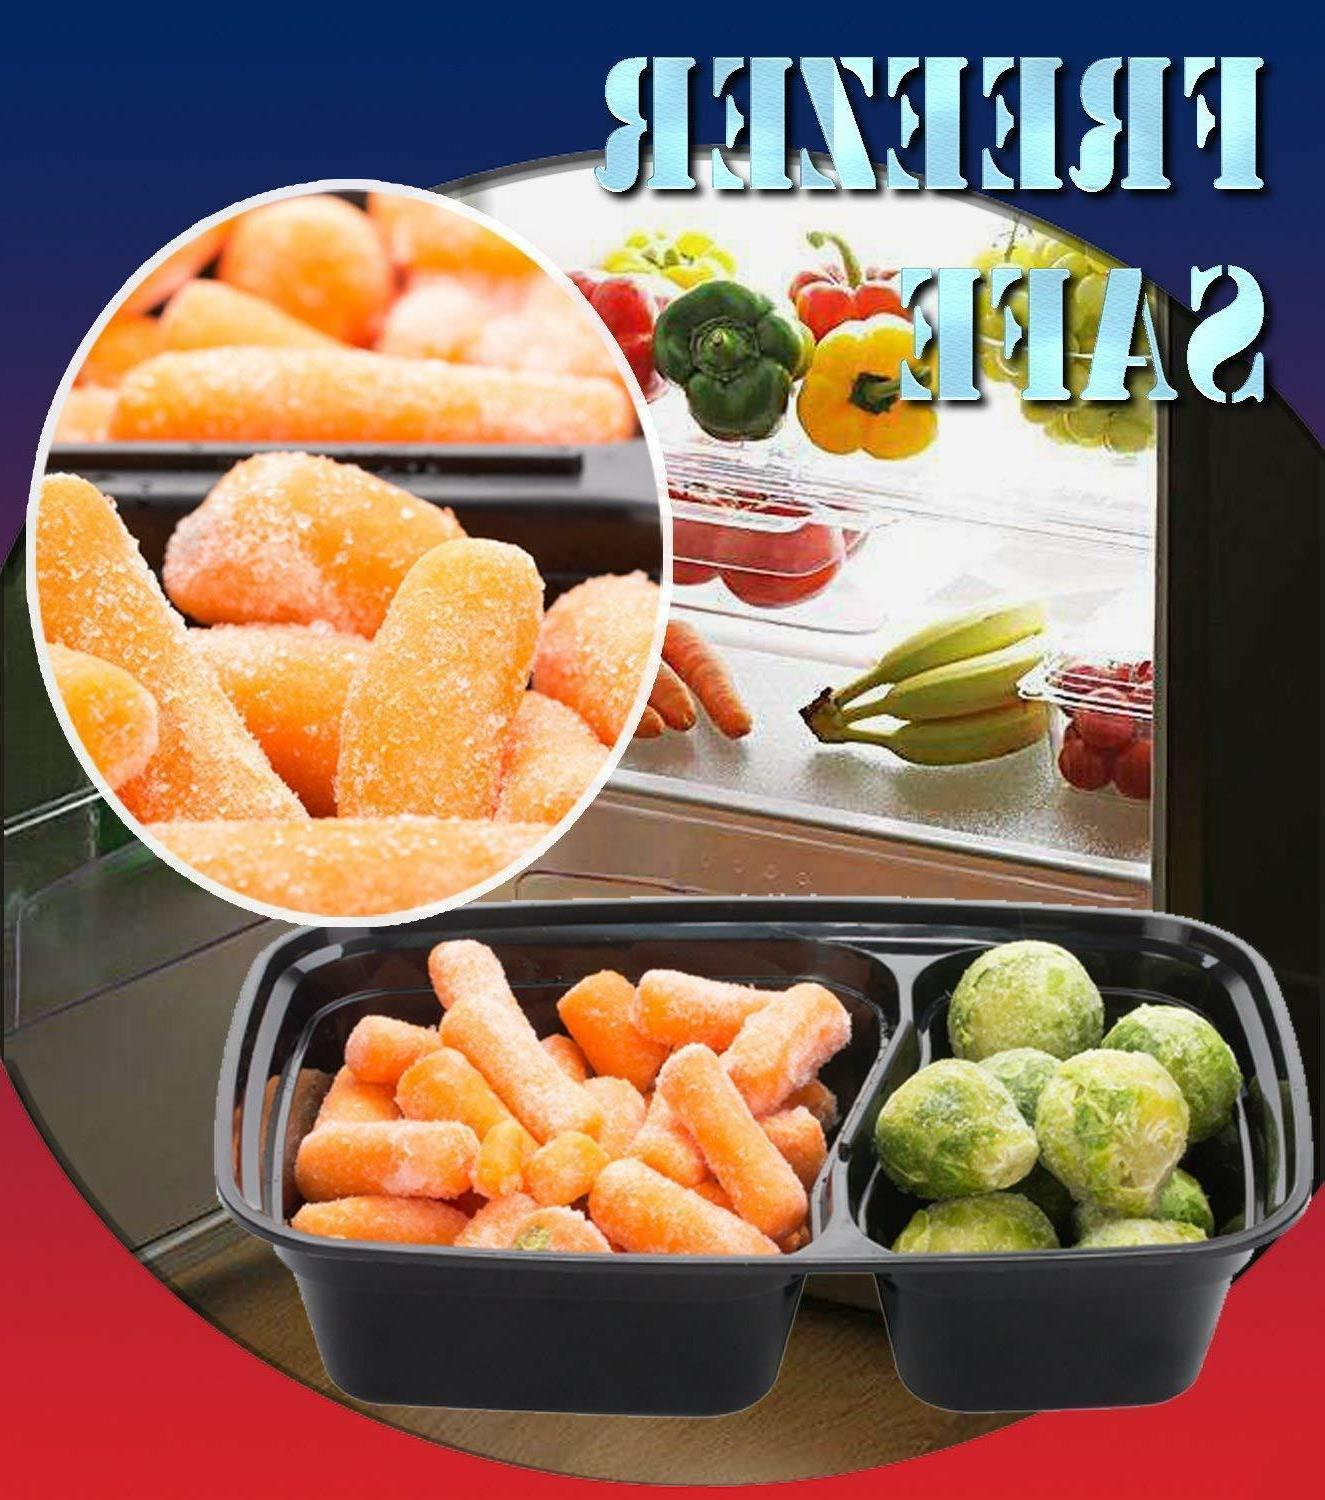 20 Meal Containers Food Microwave Safe 2 Compartment